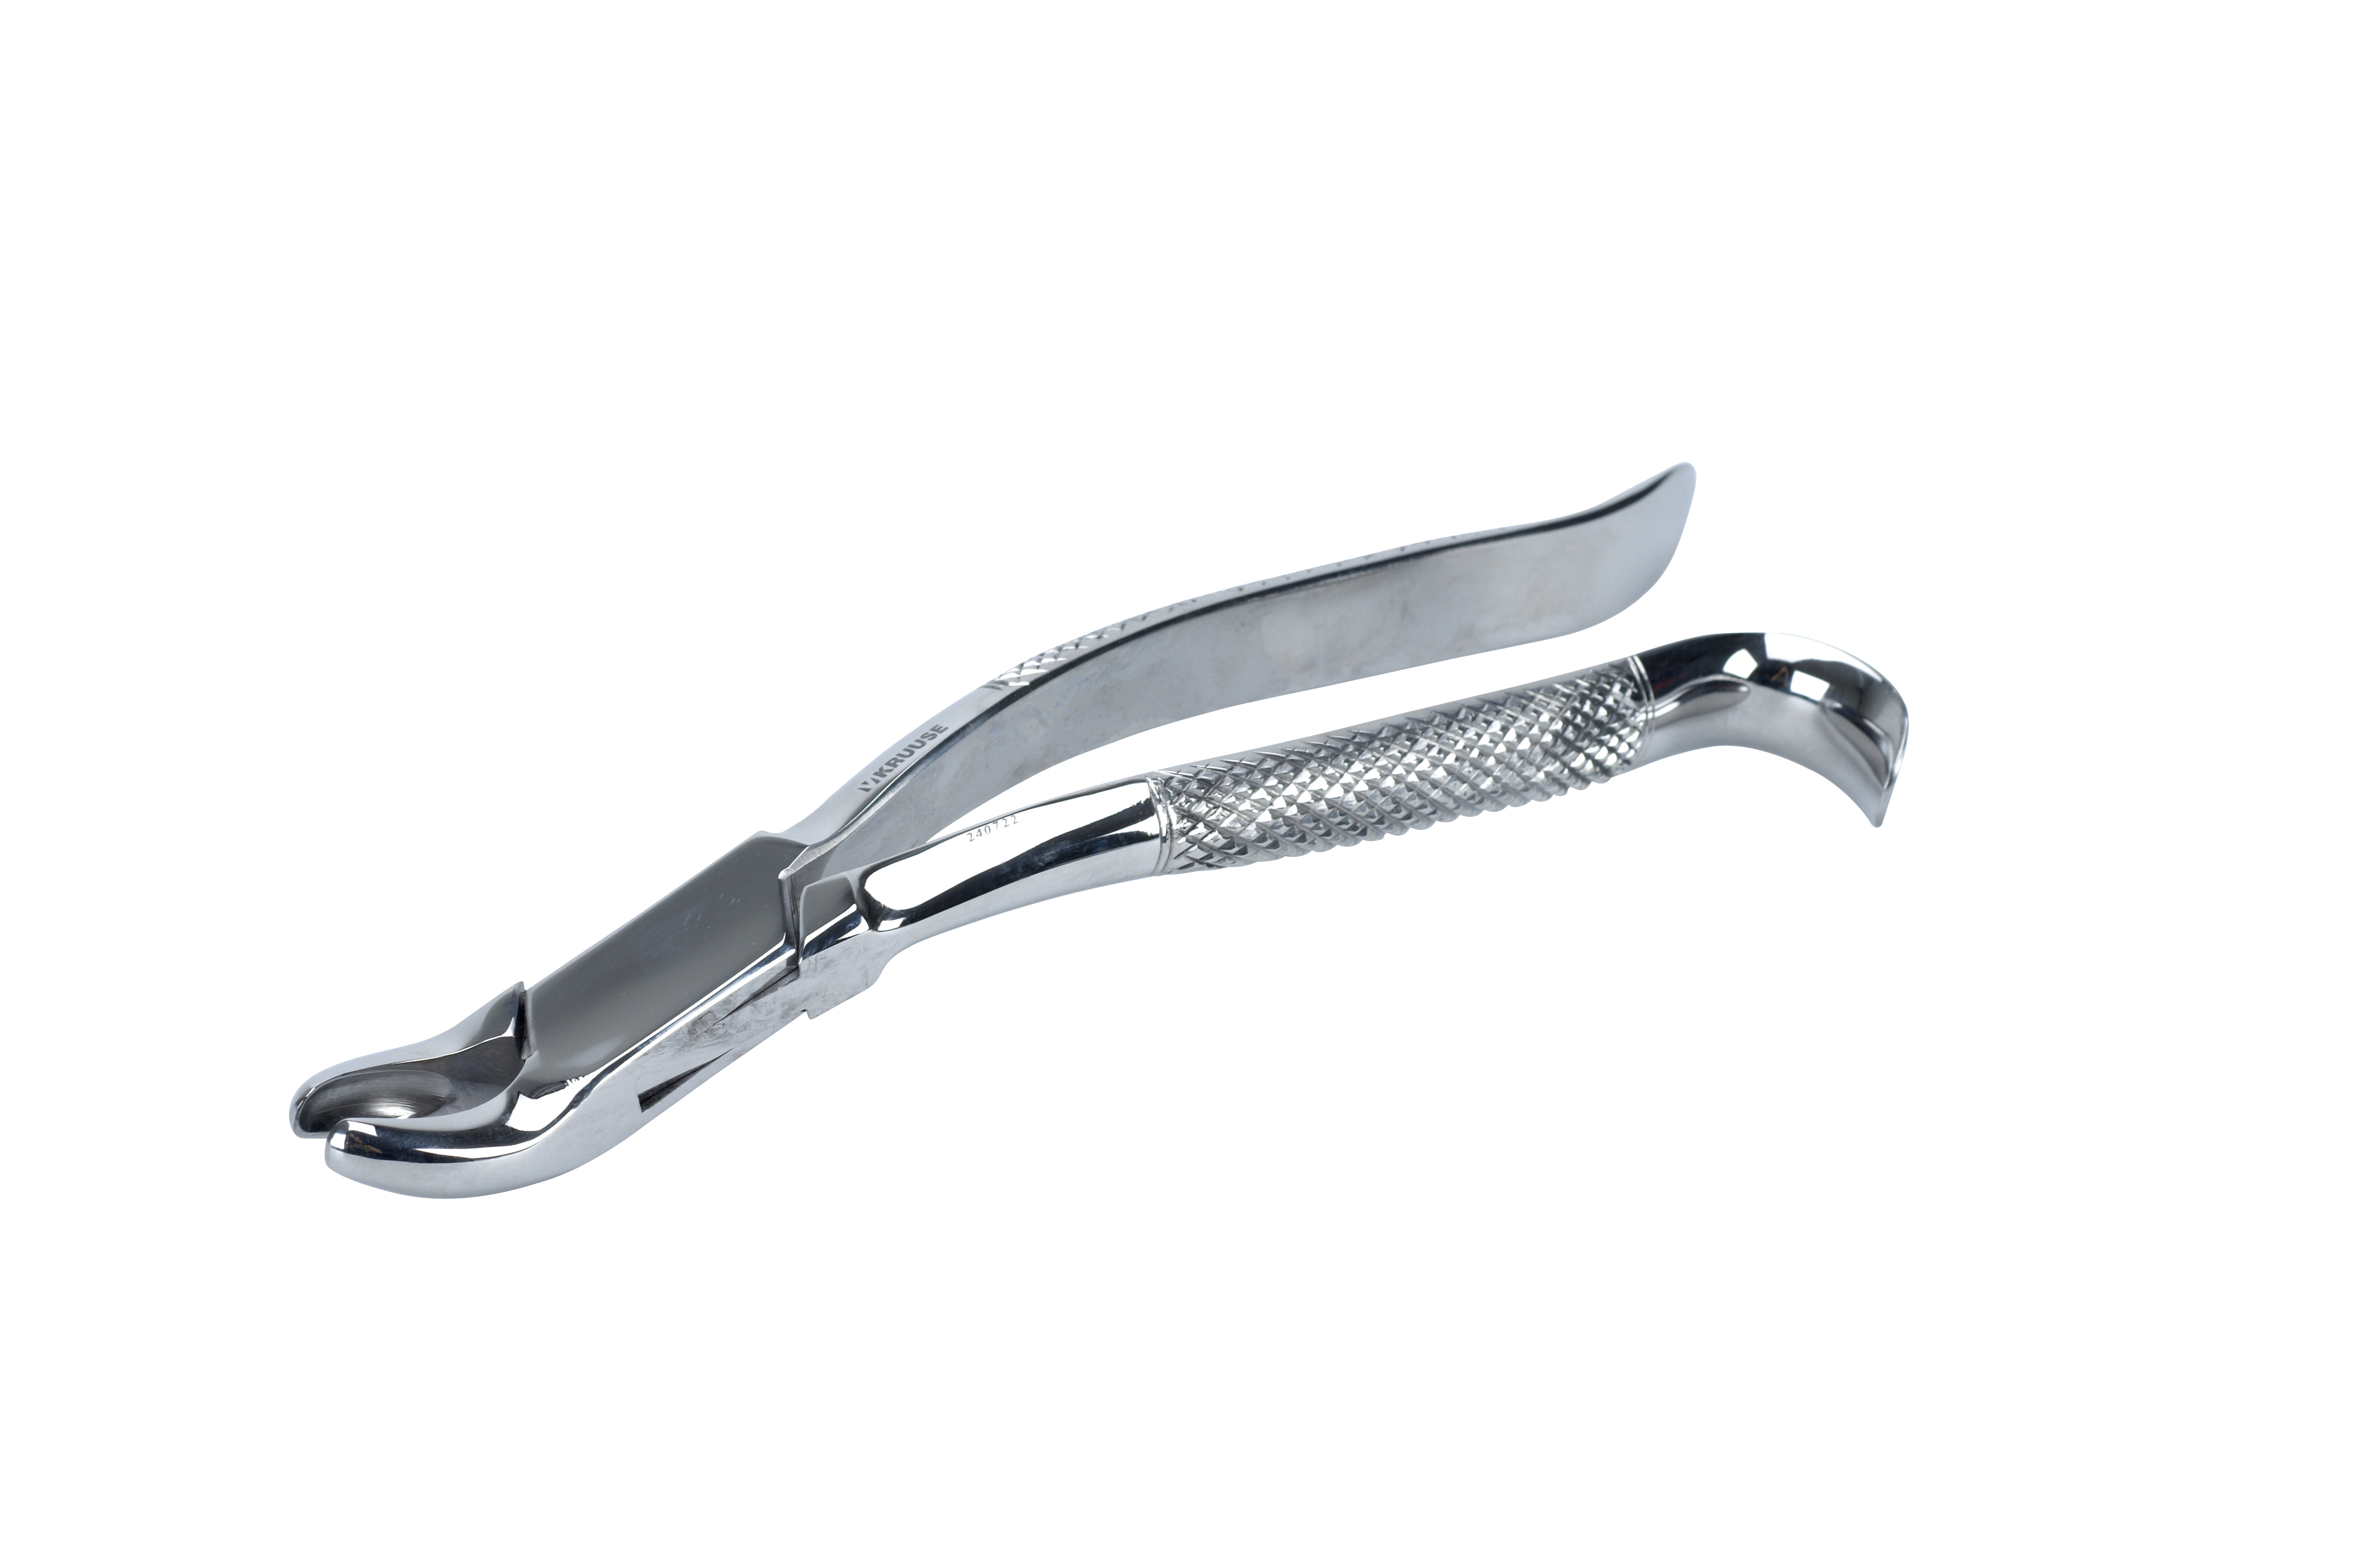 EQUIVET tooth extractor forceps for extractor kit ref. 240756